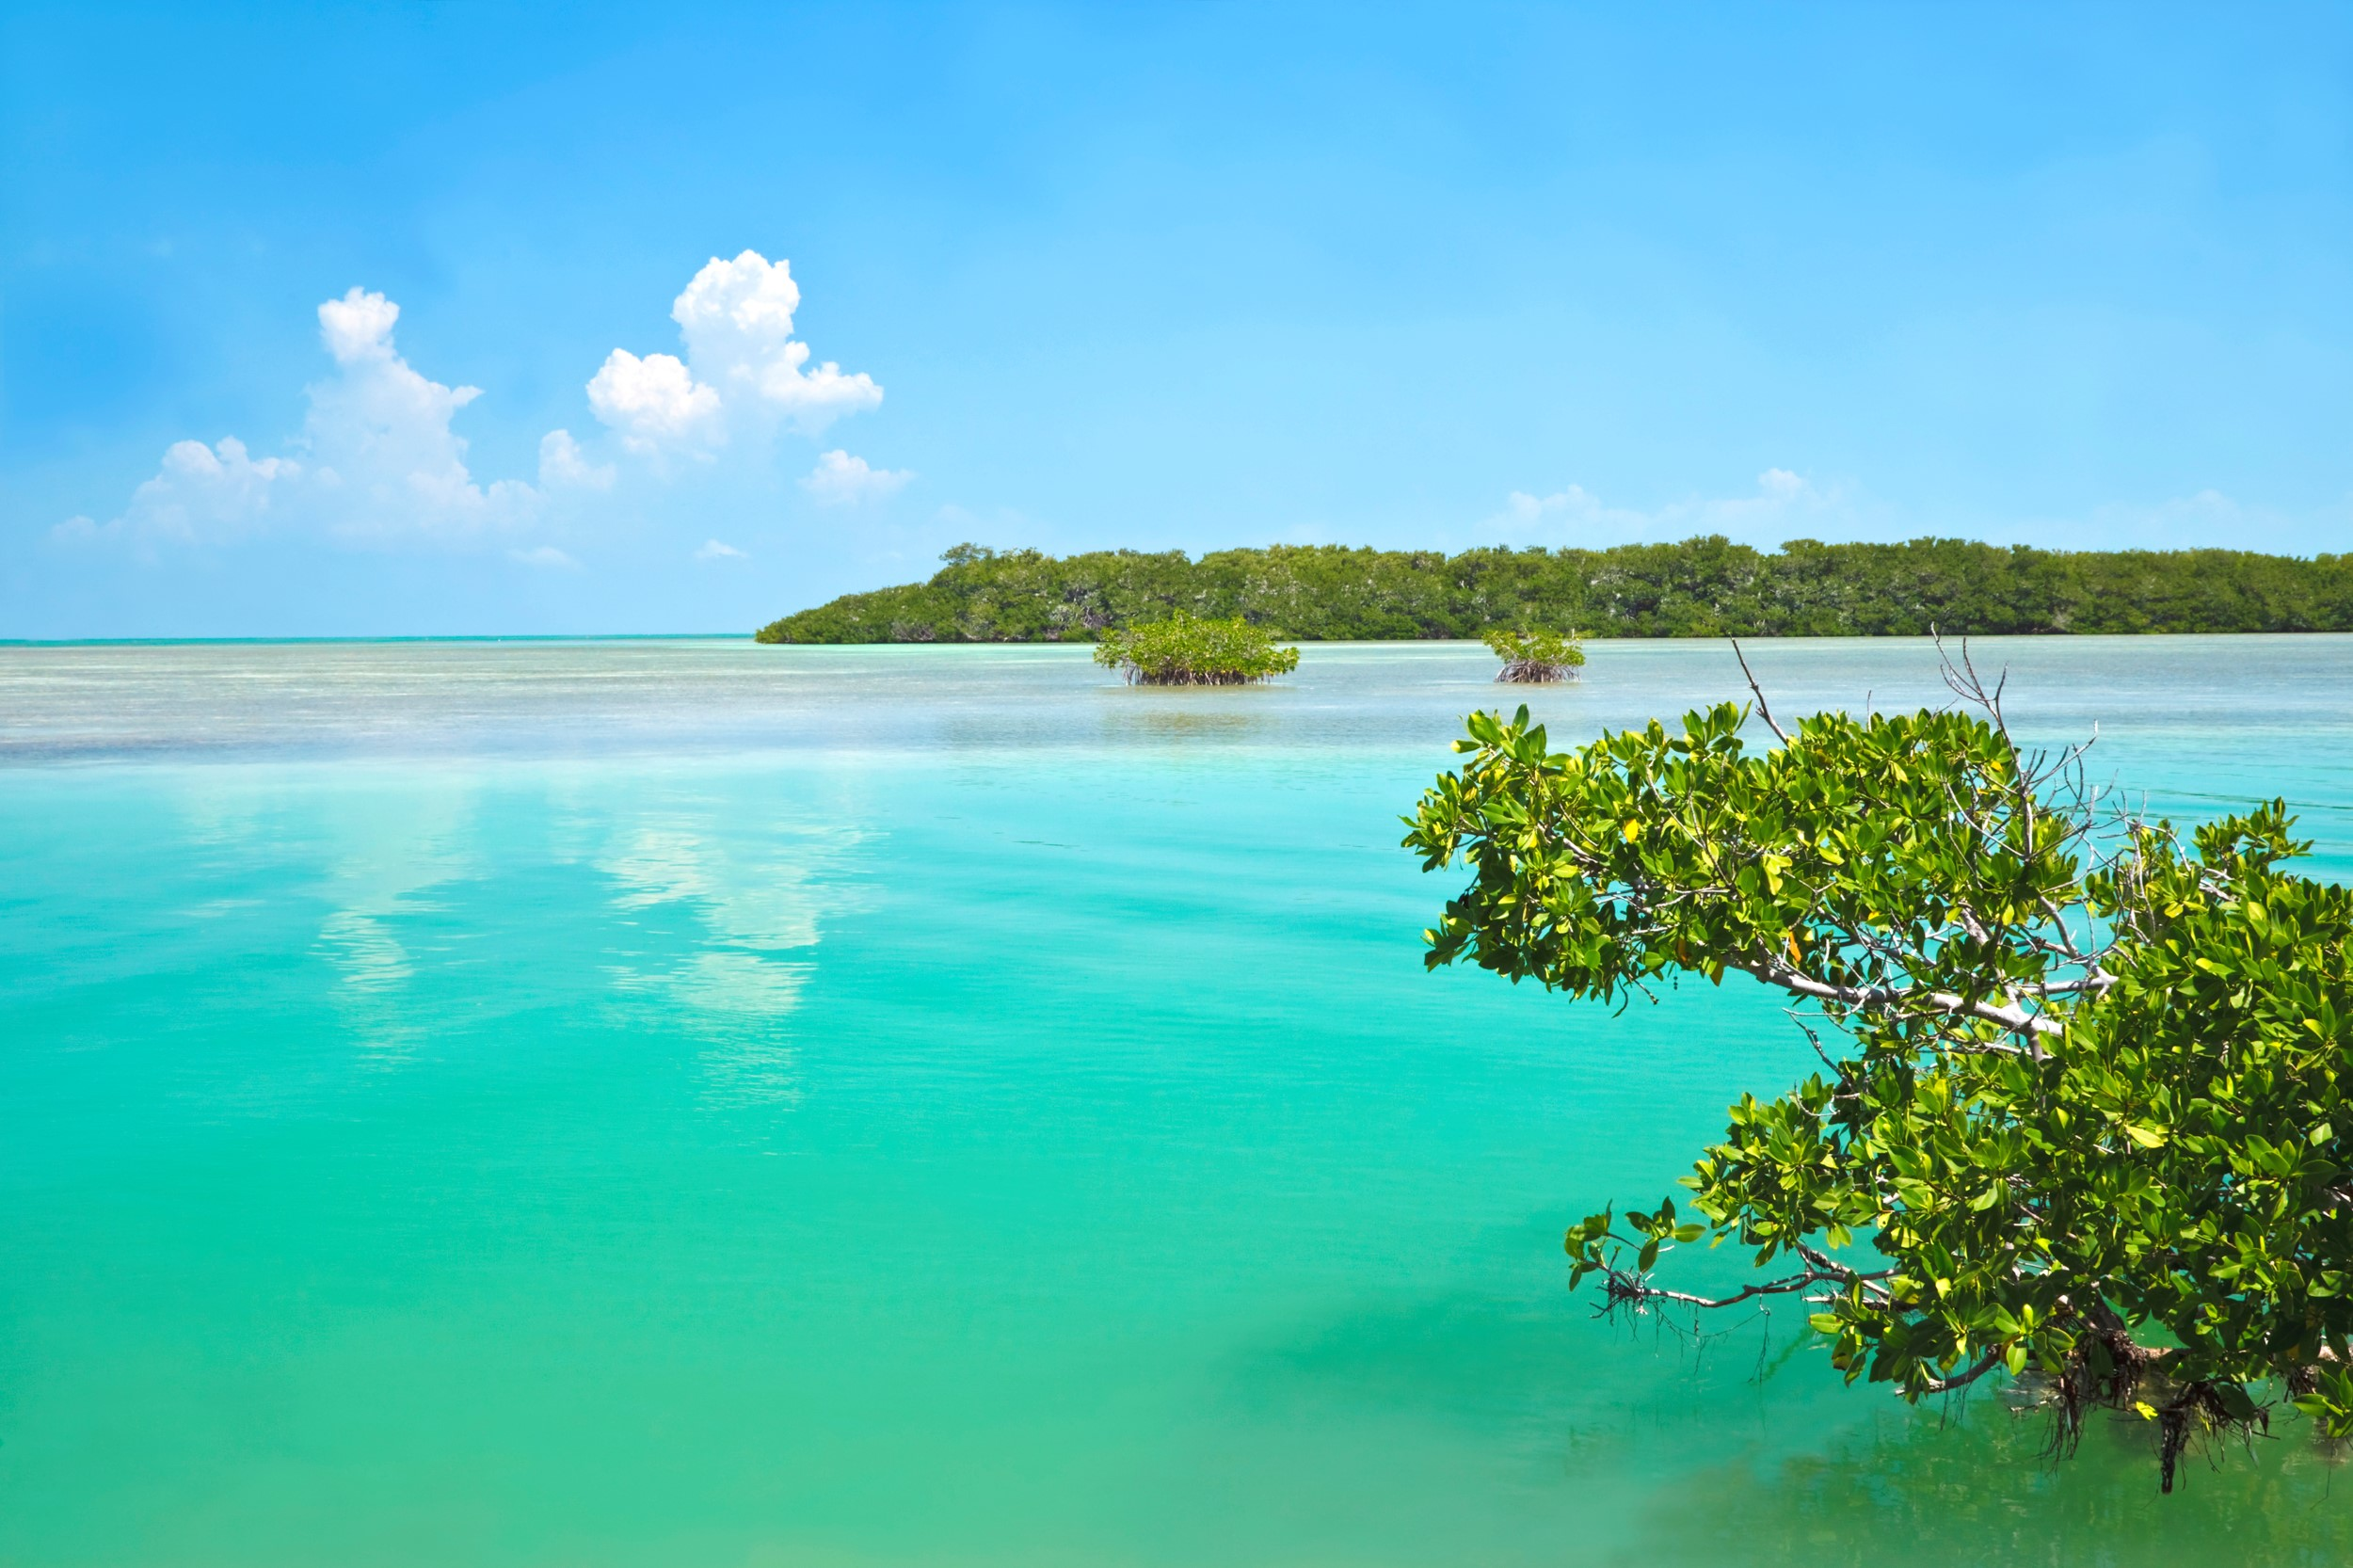 Turquoise waters and mangrove